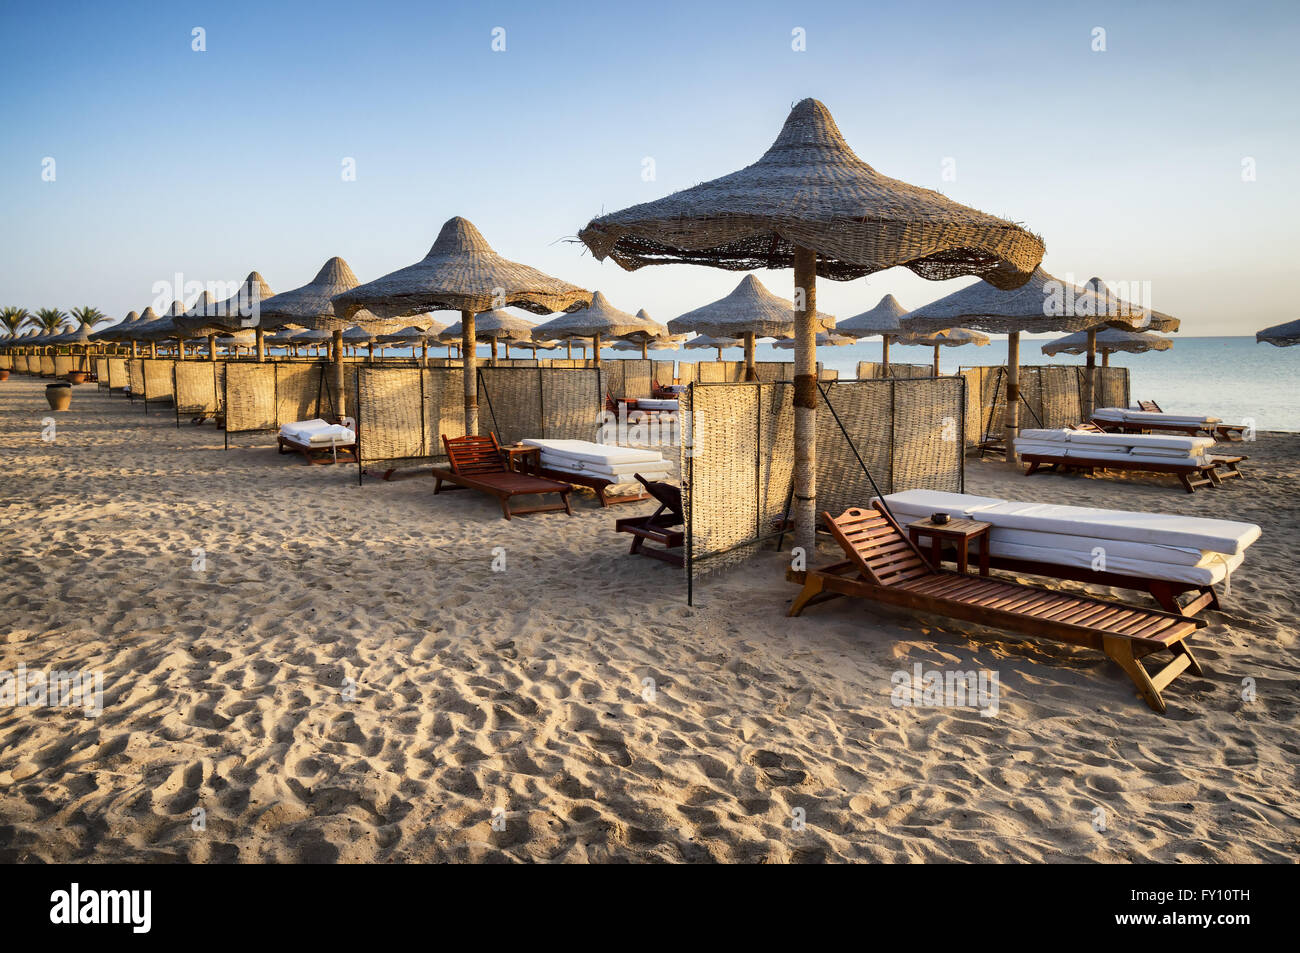 sunbeds and beach umbrella in Marsa Alam, Egypt - Stock Image